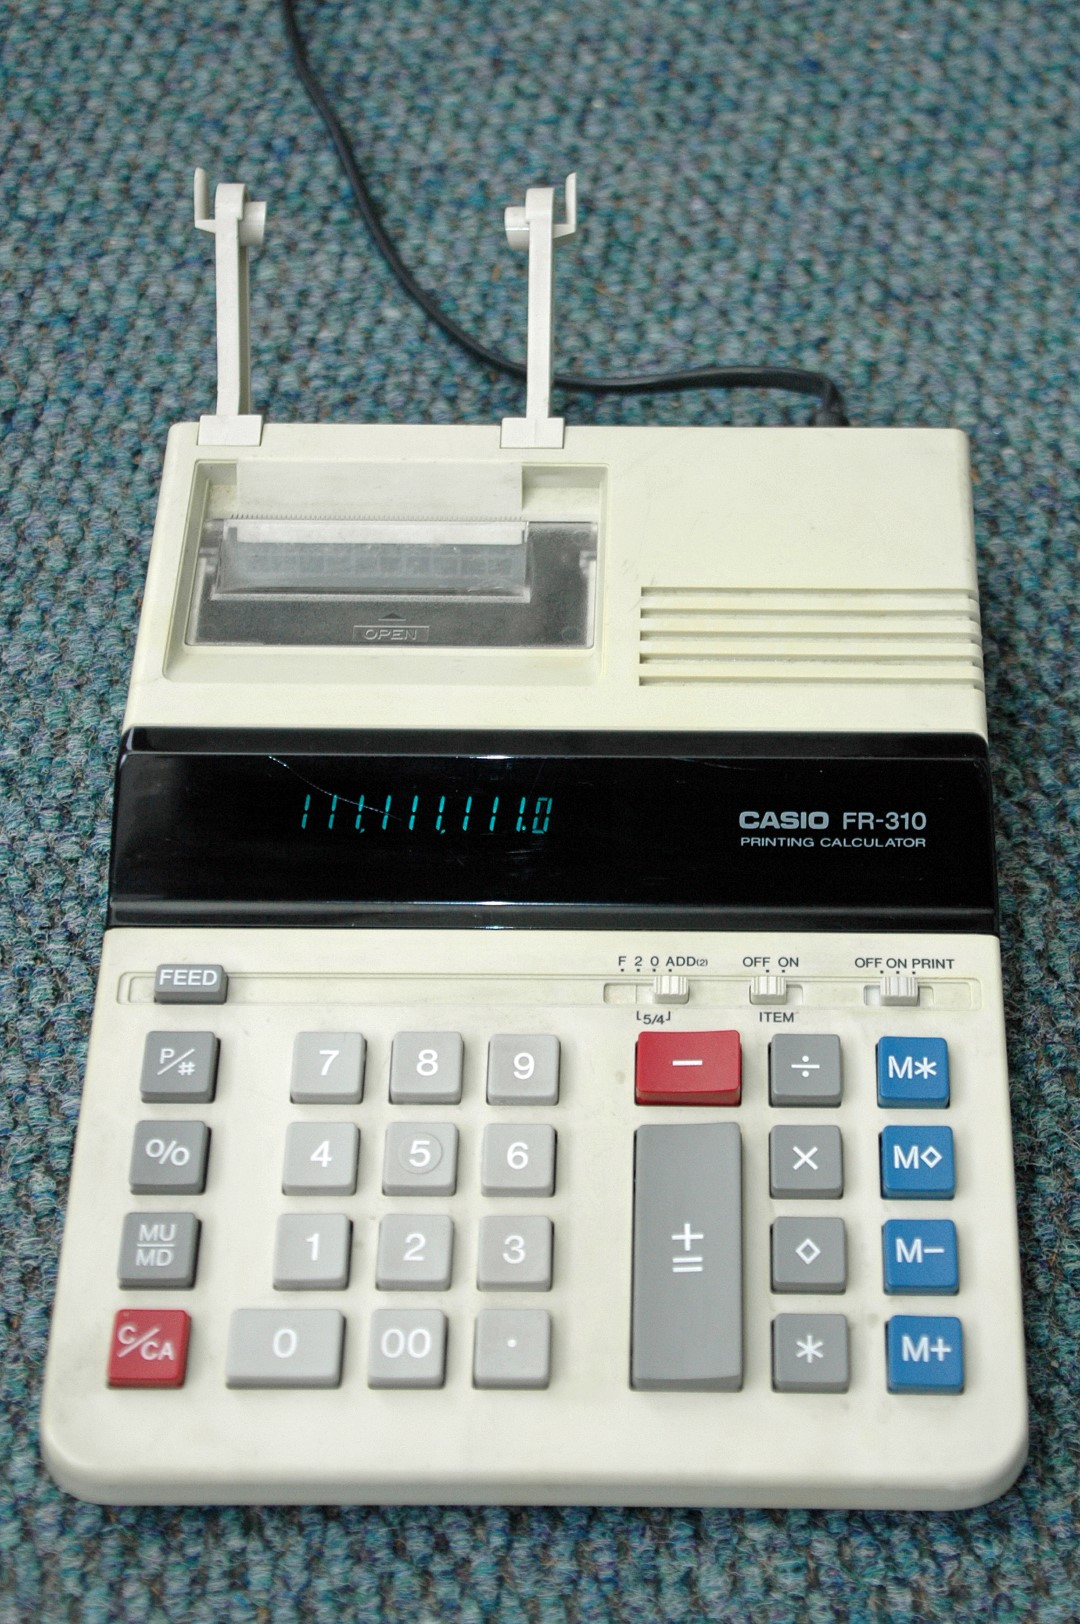 CASIO FR-310 printing calculator